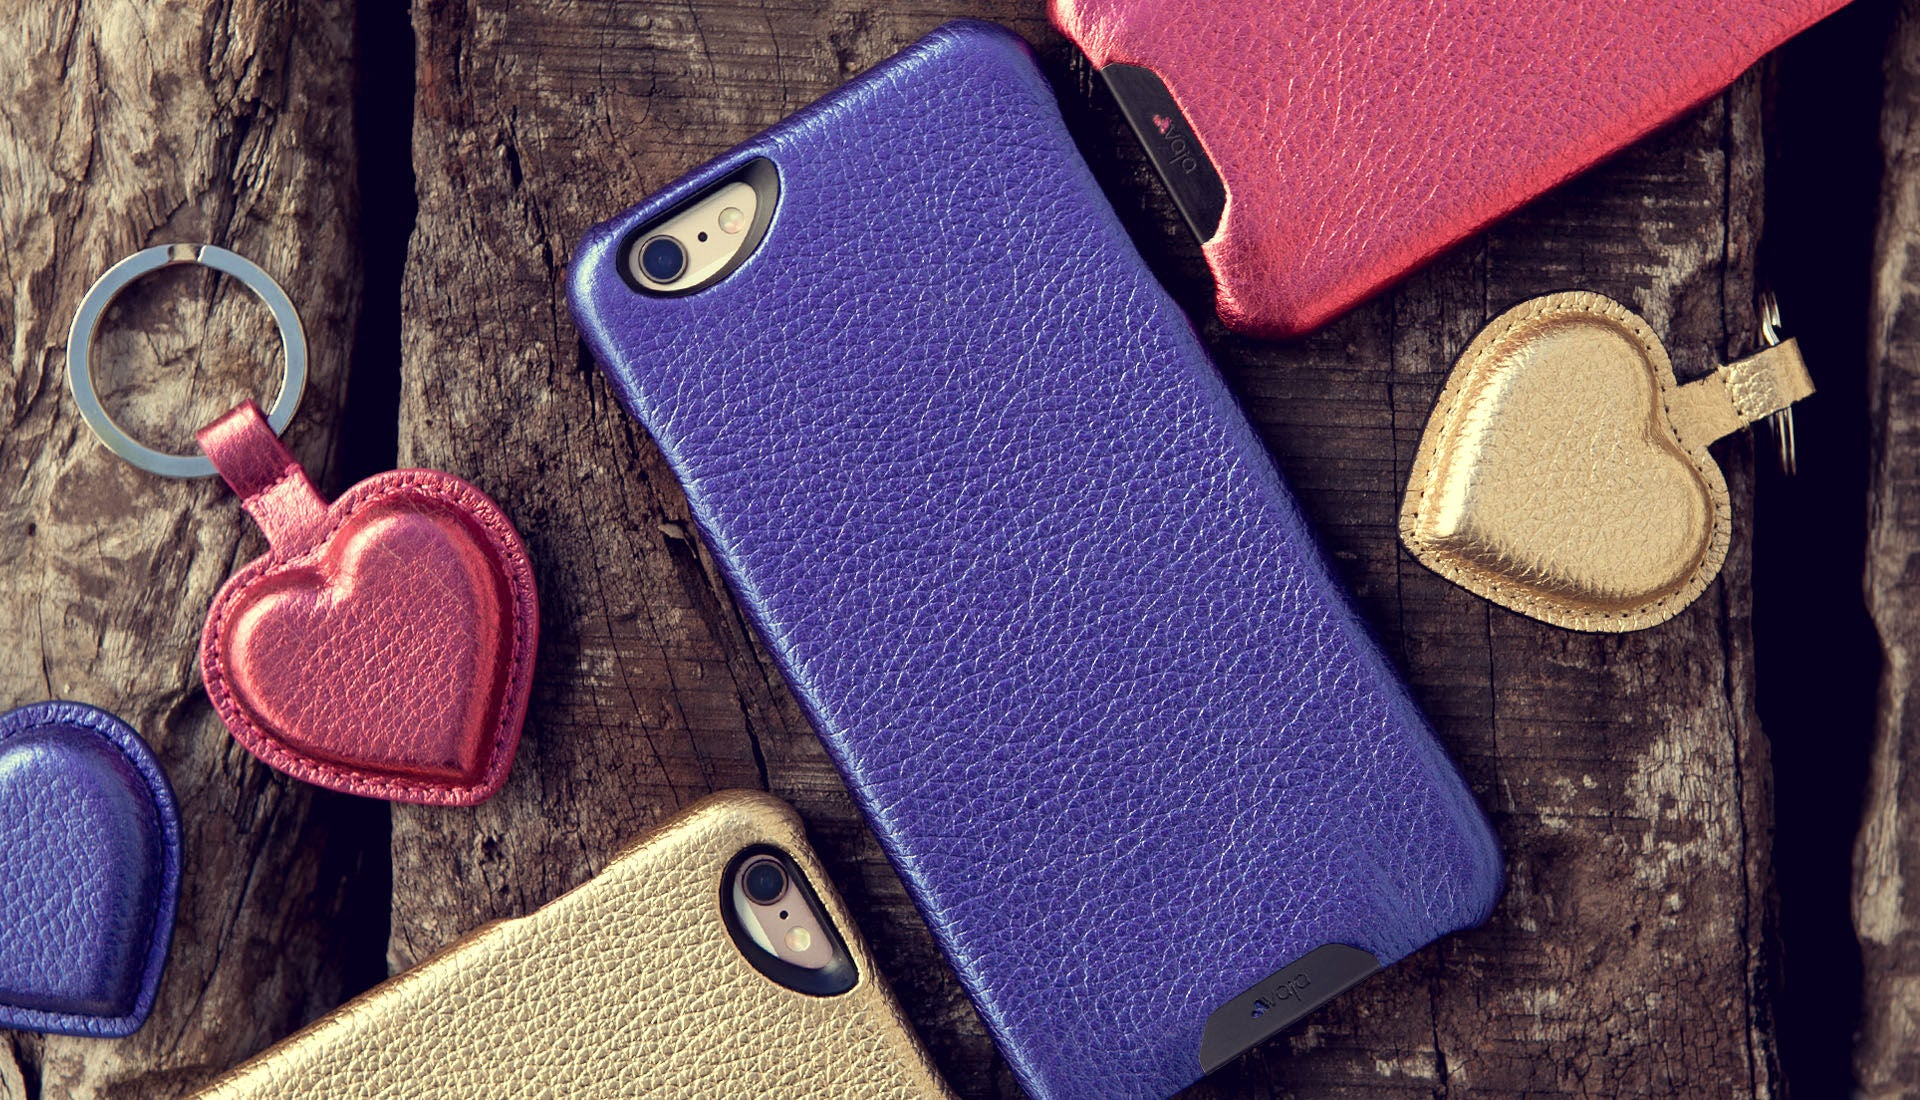 iPhone 6/6s Vintage Metallic Leather Grip  Case